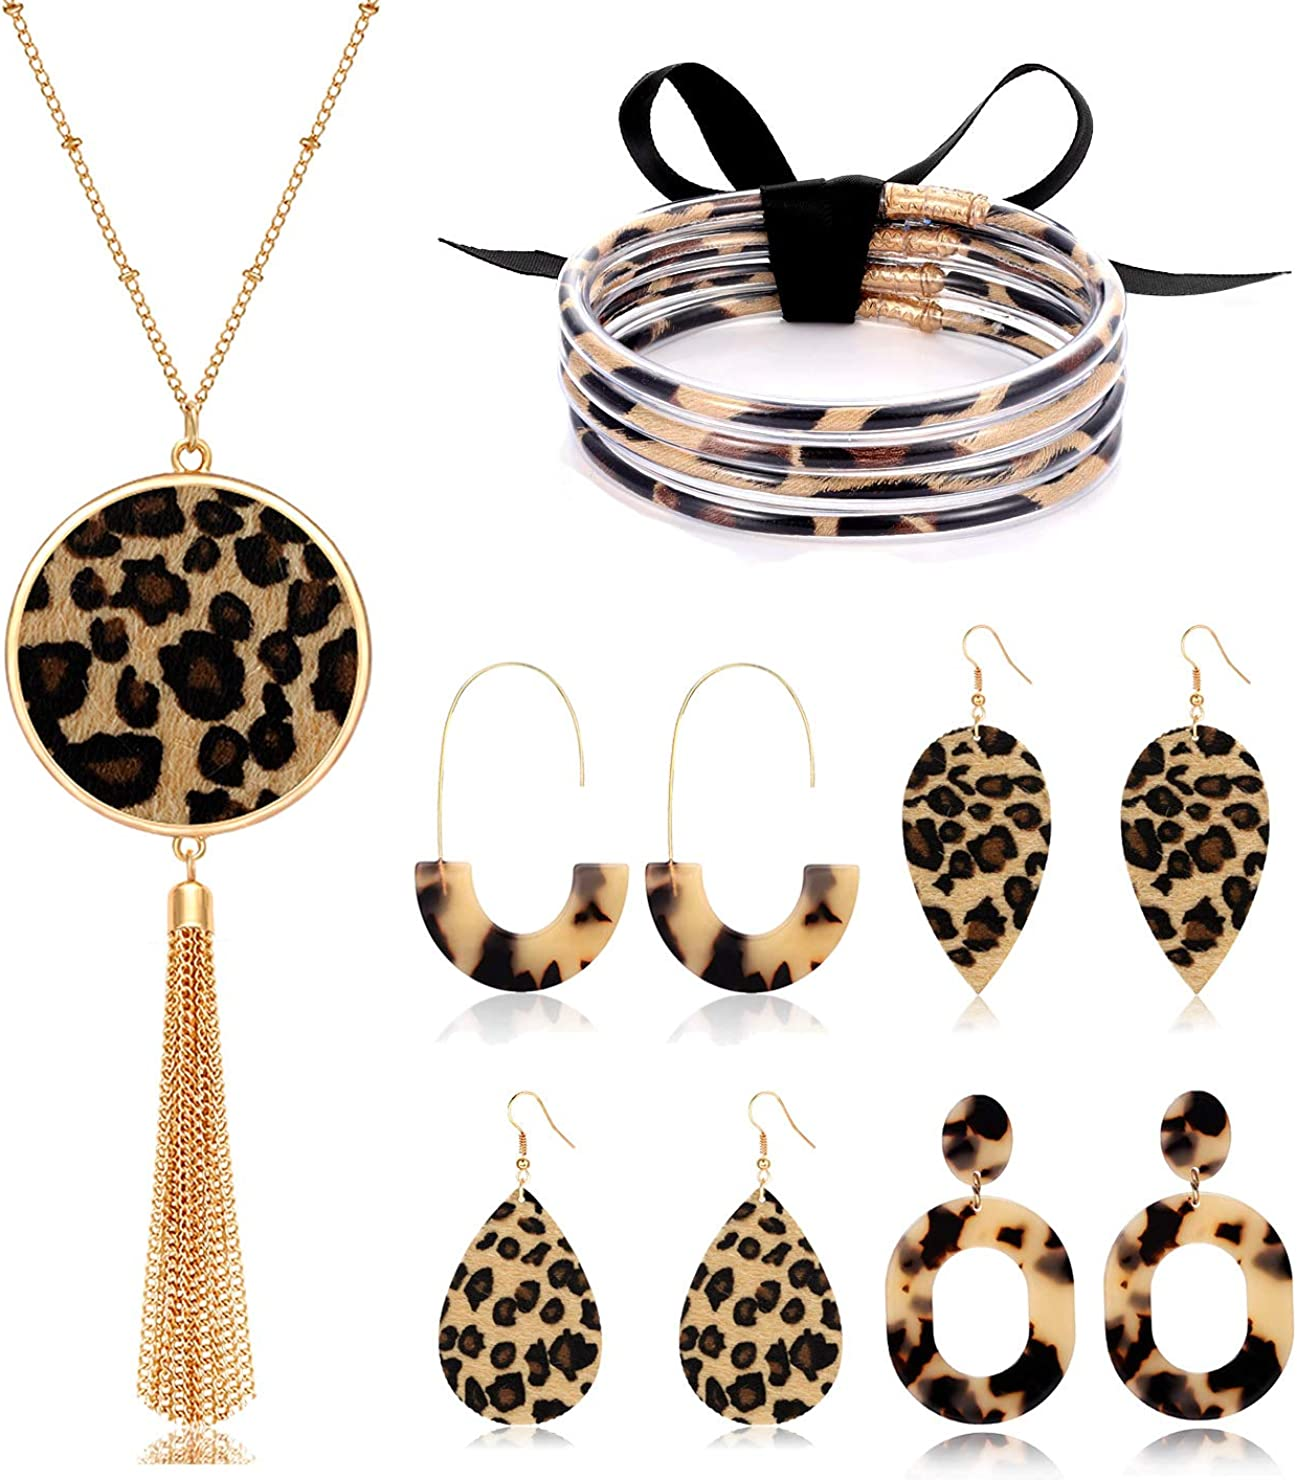 Leopard Necklace Acrylic Earrings Silicone Jelly Bangles for Women Leopard Jewelry Set Long Pendant Necklaces Resin Hoop Dangle Earrings Leather Leaf Earrings Silicone Bracelets for Girls